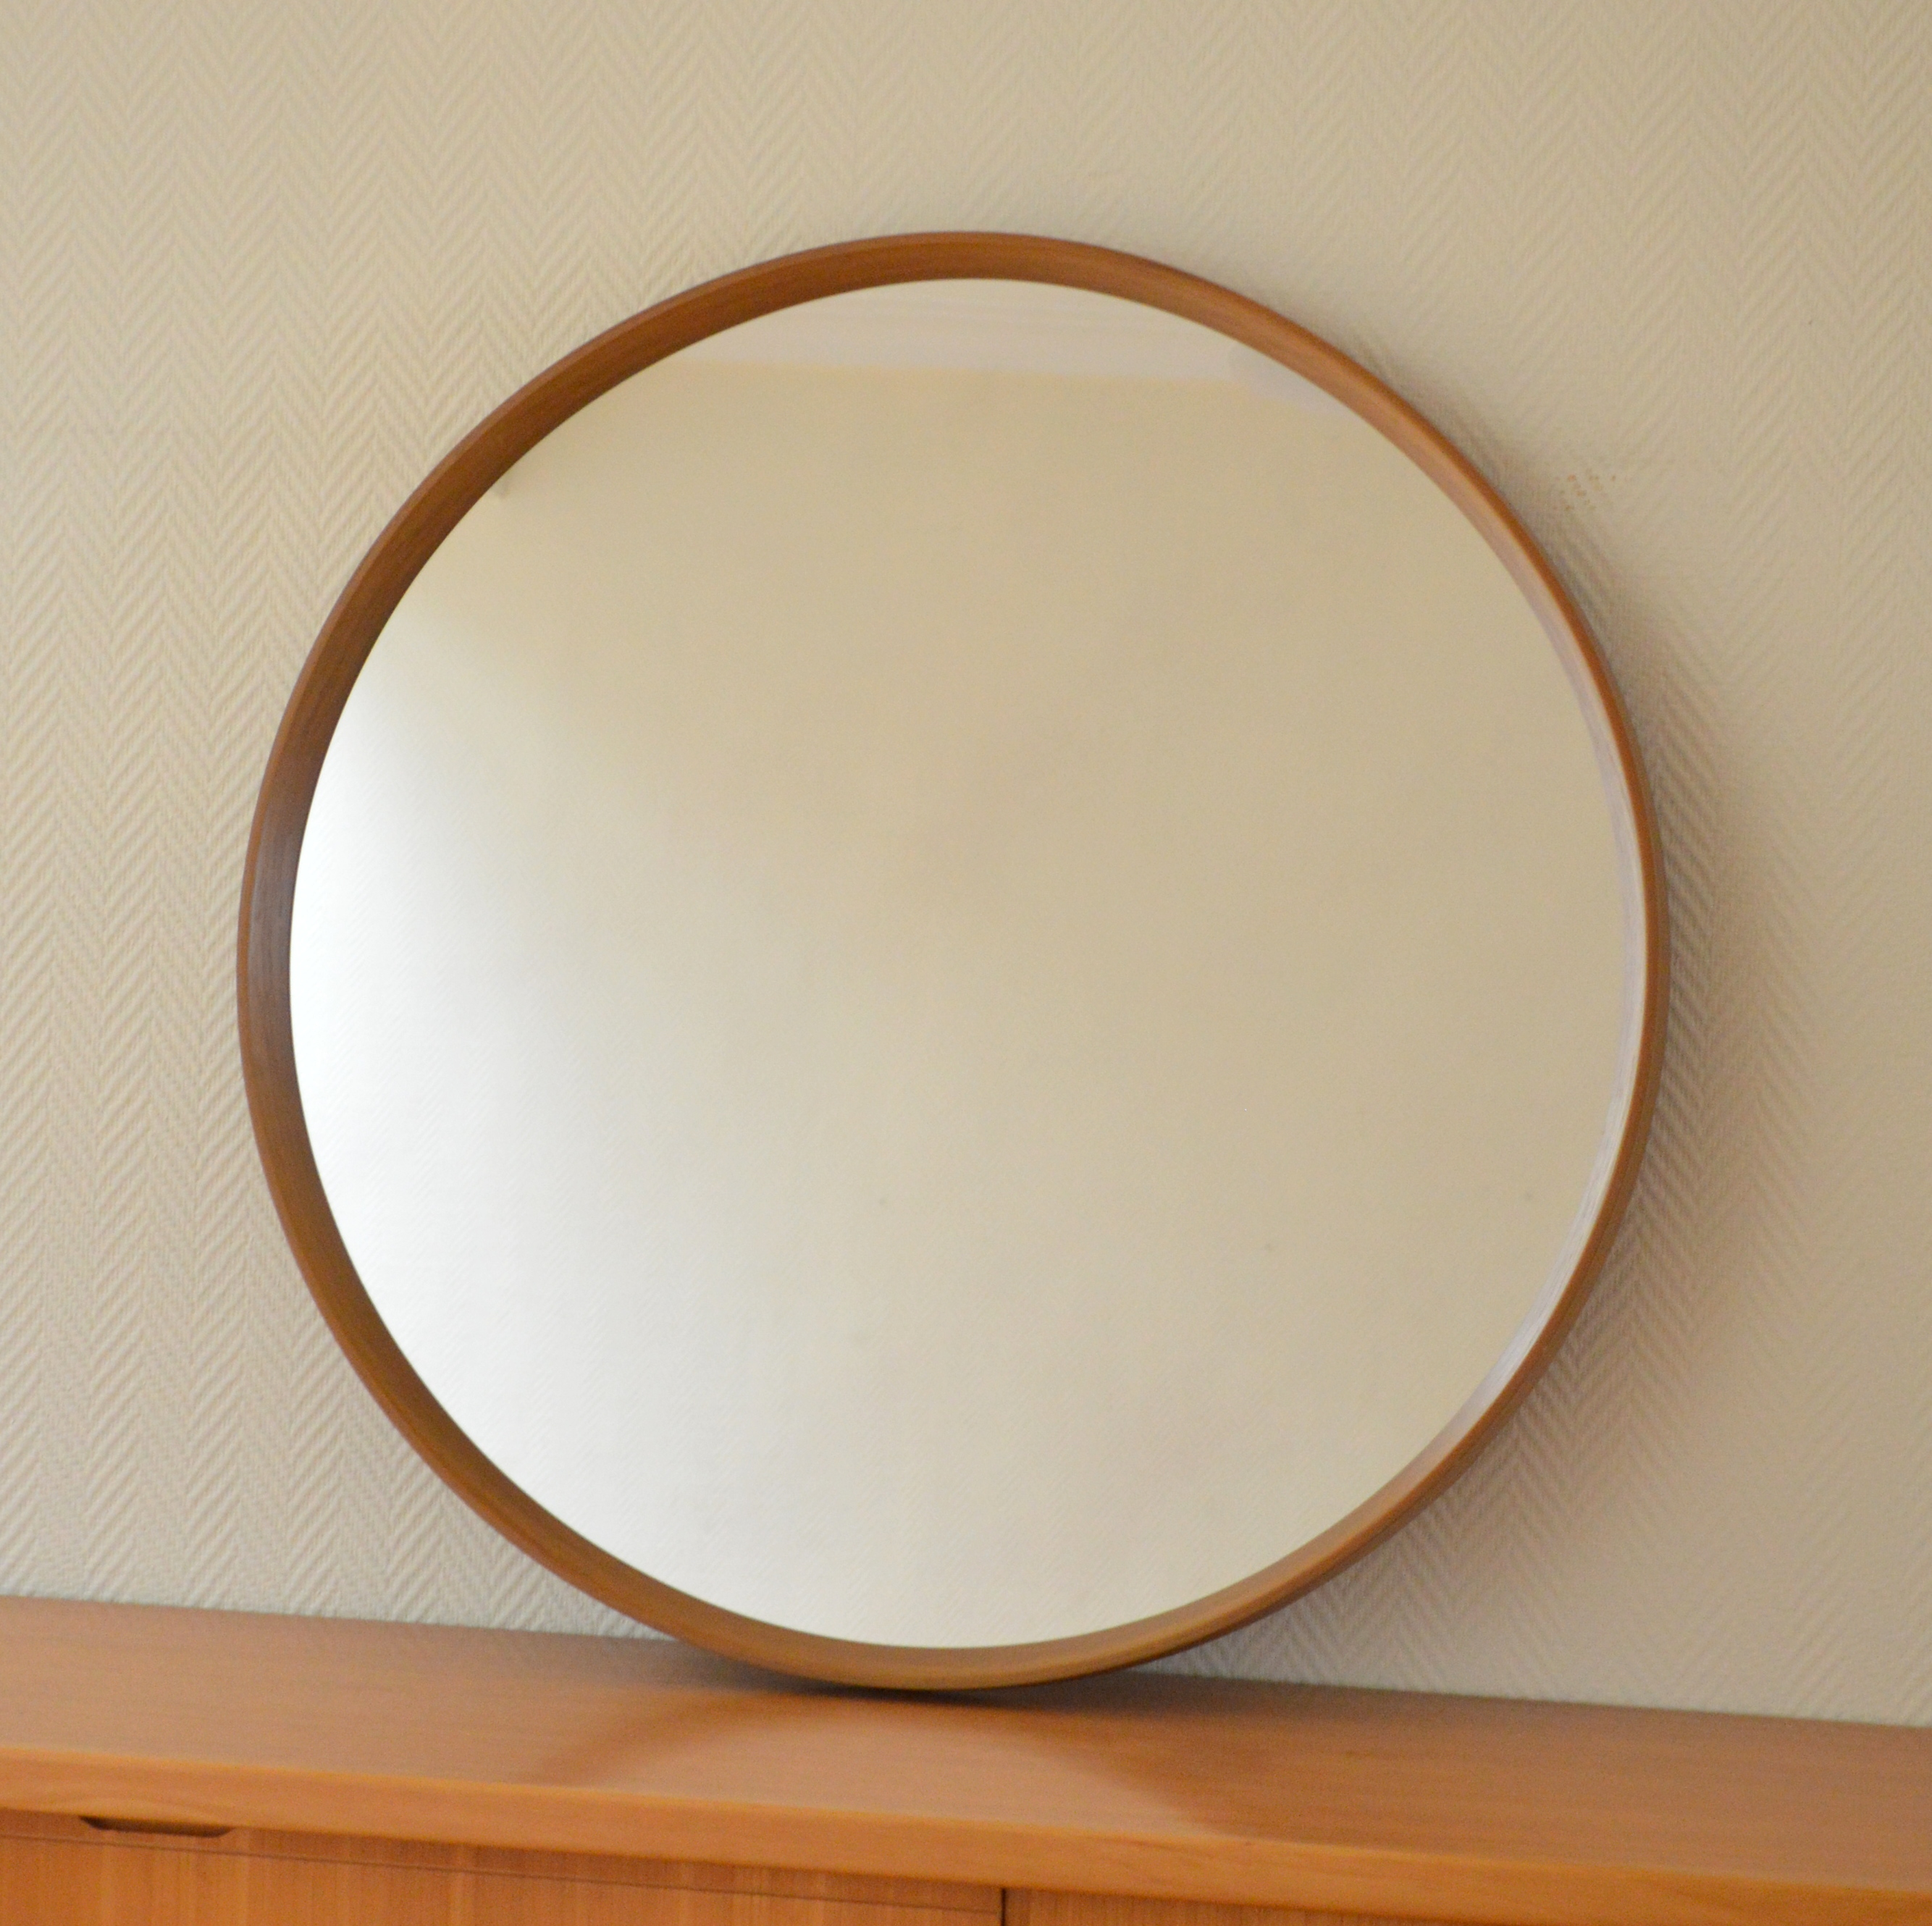 Grand miroir rond vintage for Grand miroir rond bois